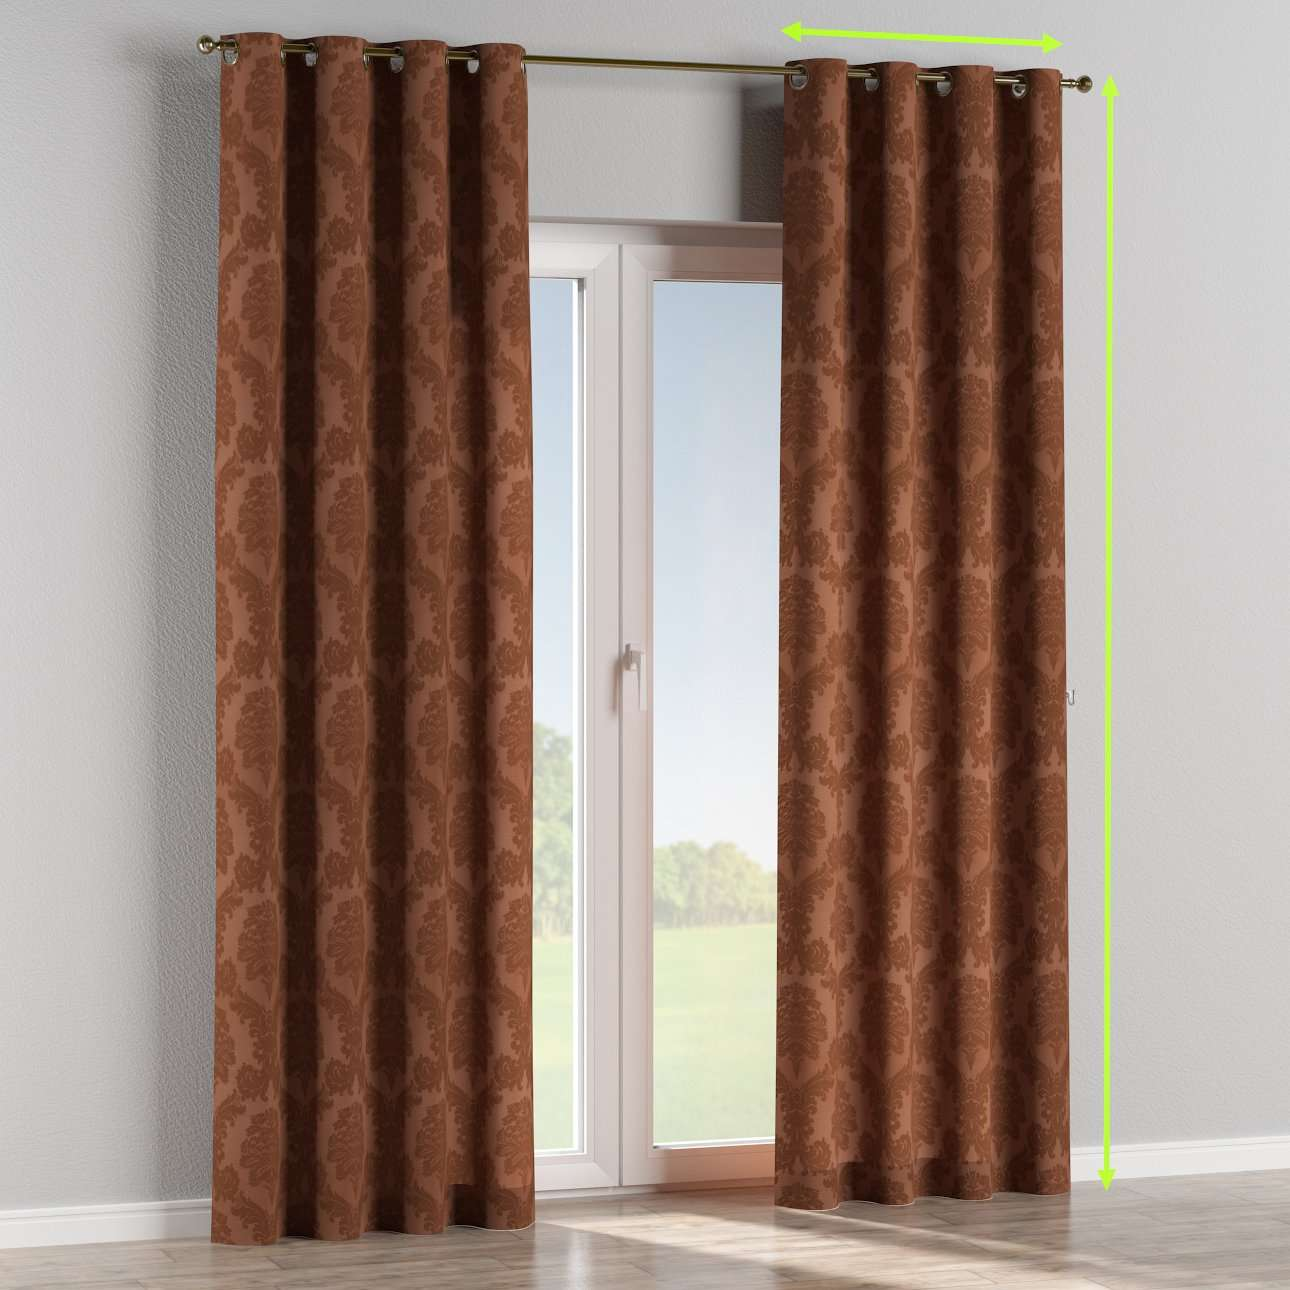 Eyelet lined curtains in collection Damasco, fabric: 613-88